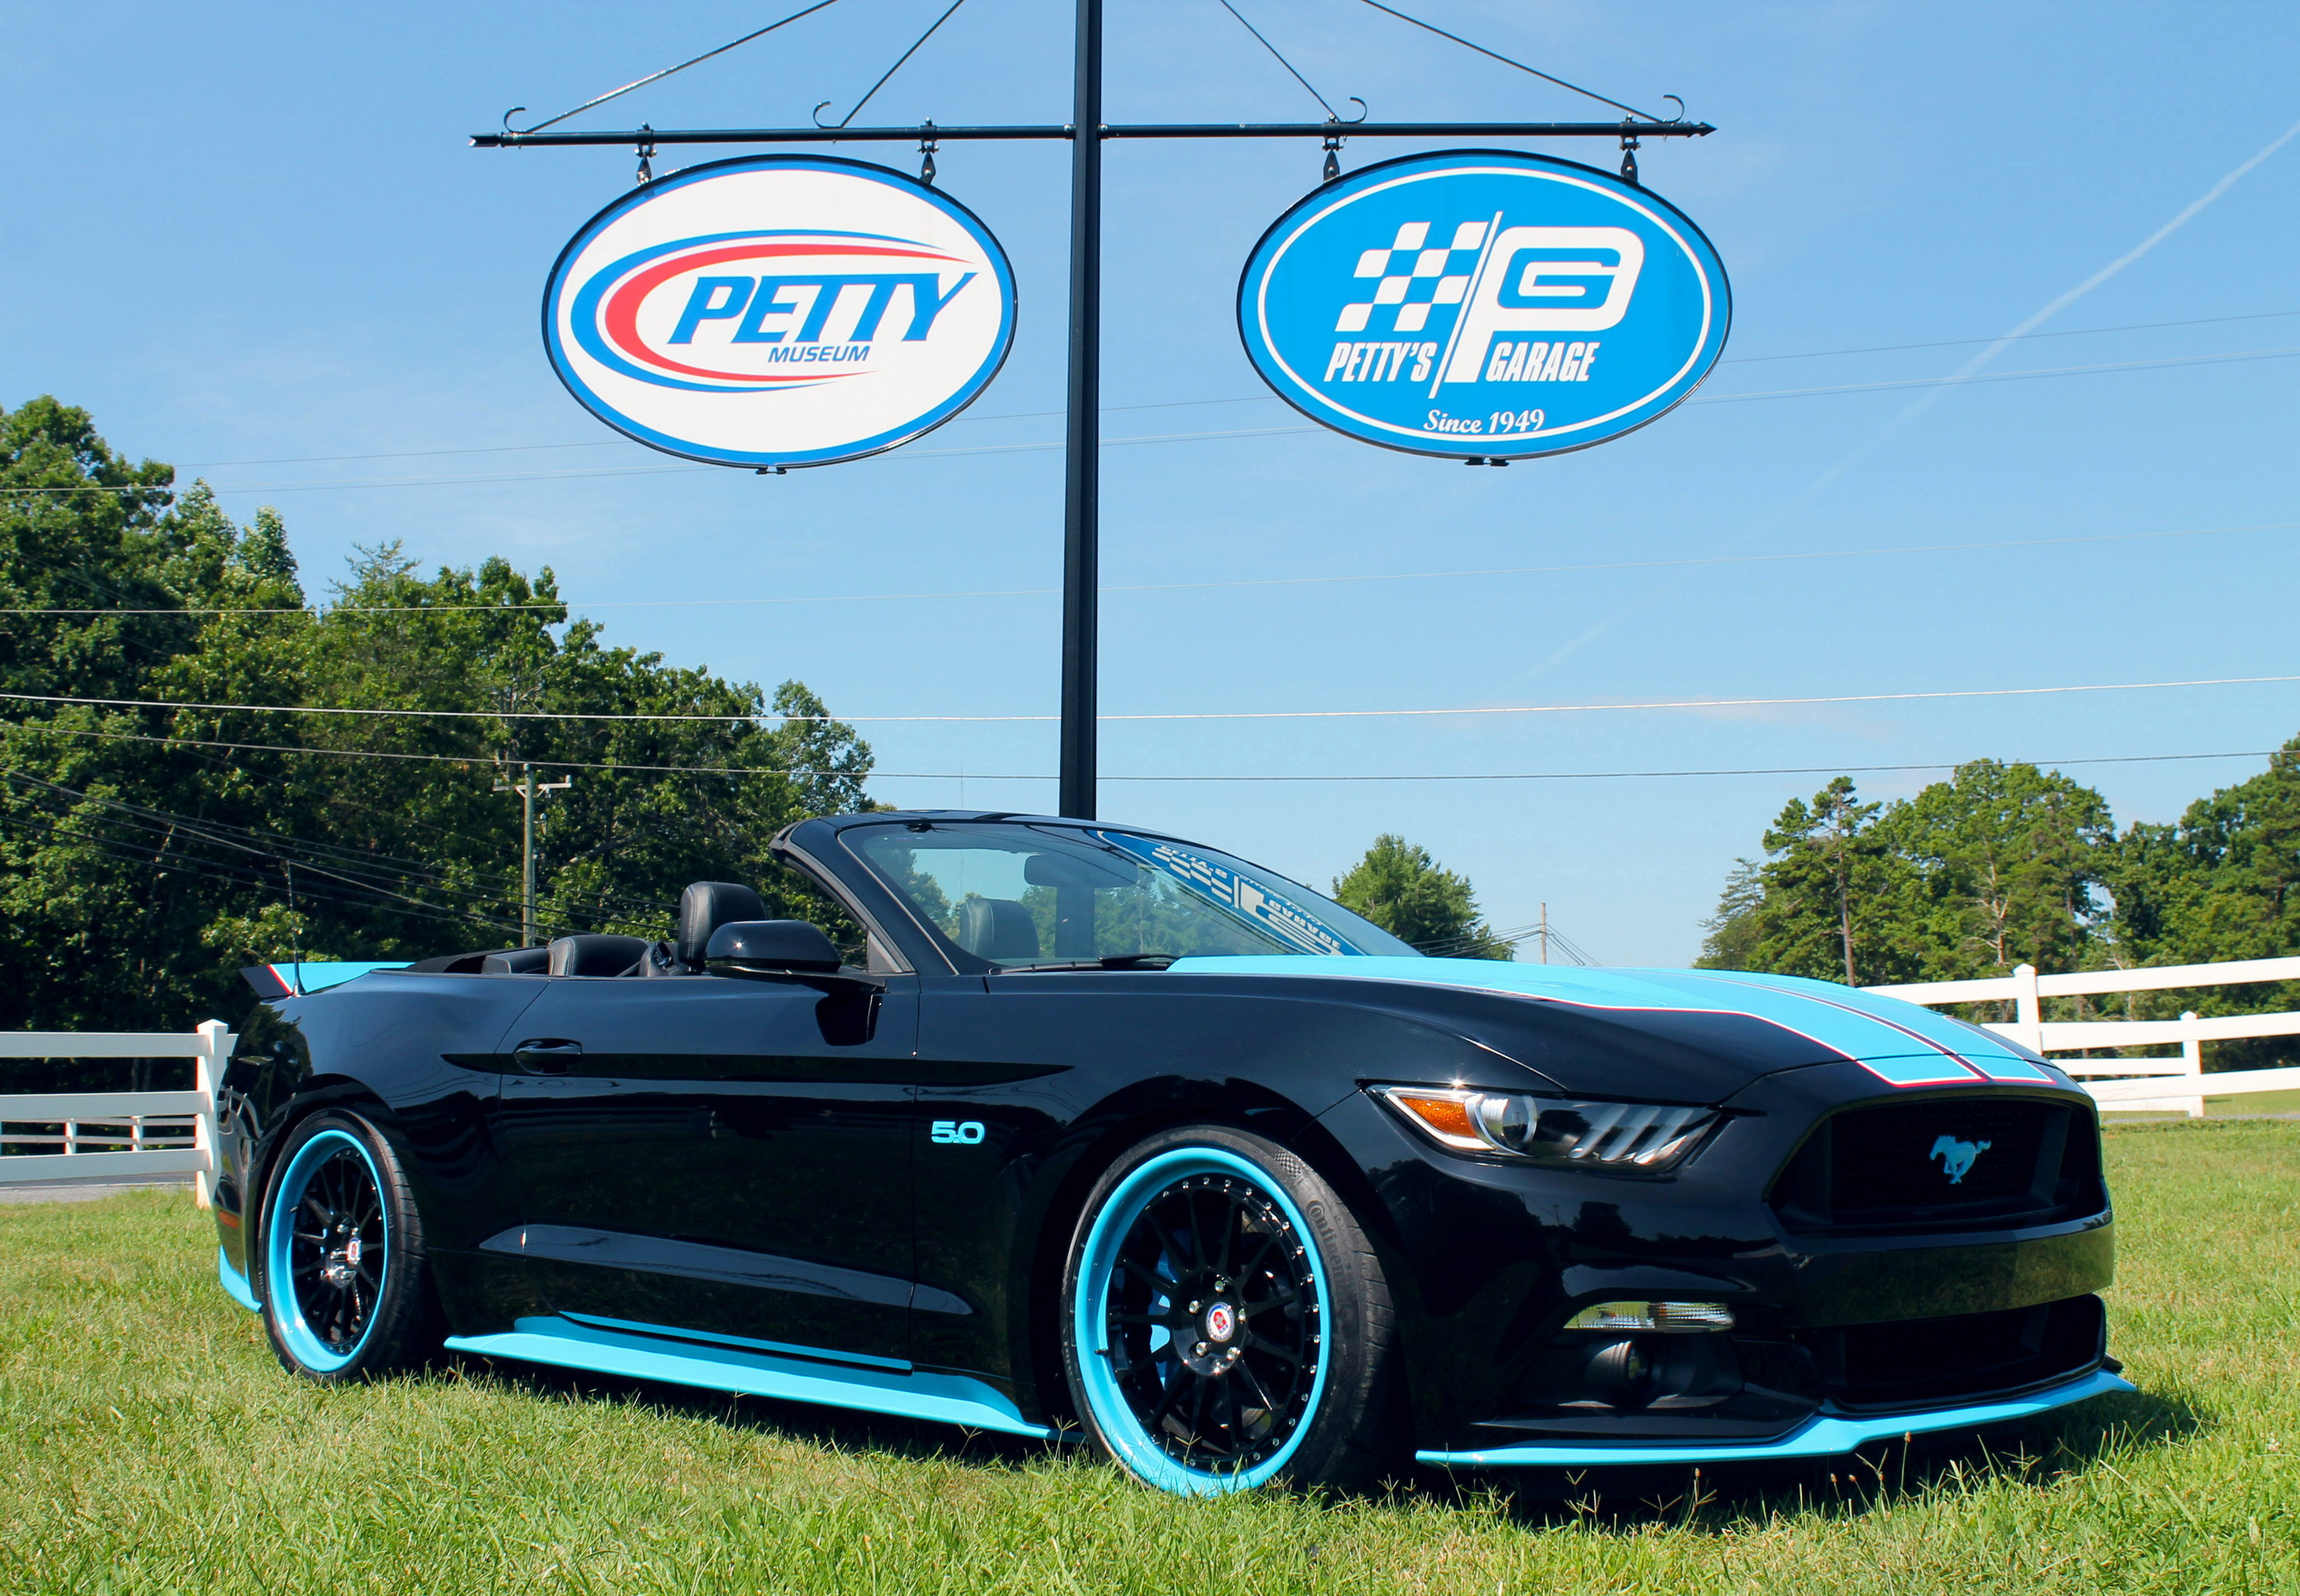 Ford Mustang GT King Edition By Petty's Garage Gallery 652557 | Top Speed